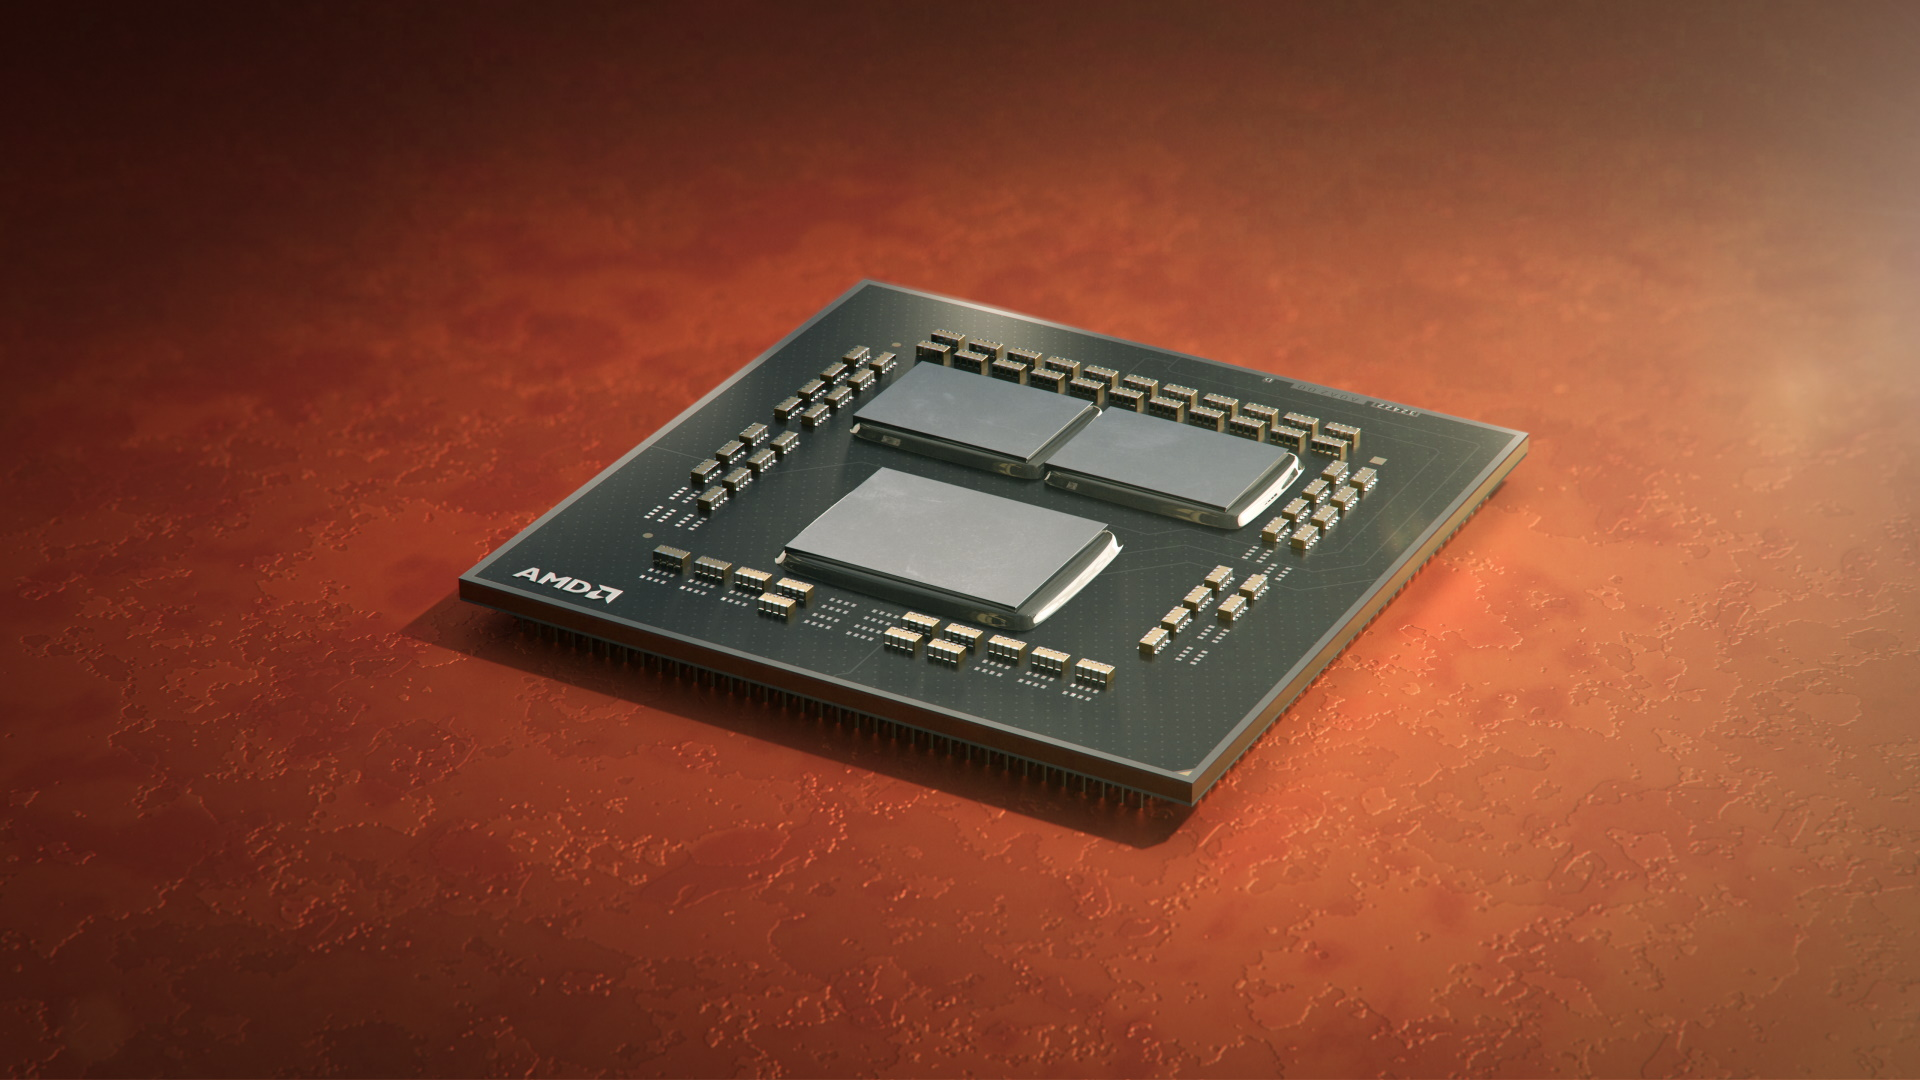 Thousands upon thousands of AMD Ryzen 5000 CPUs are flooding into retail pre-Christmas